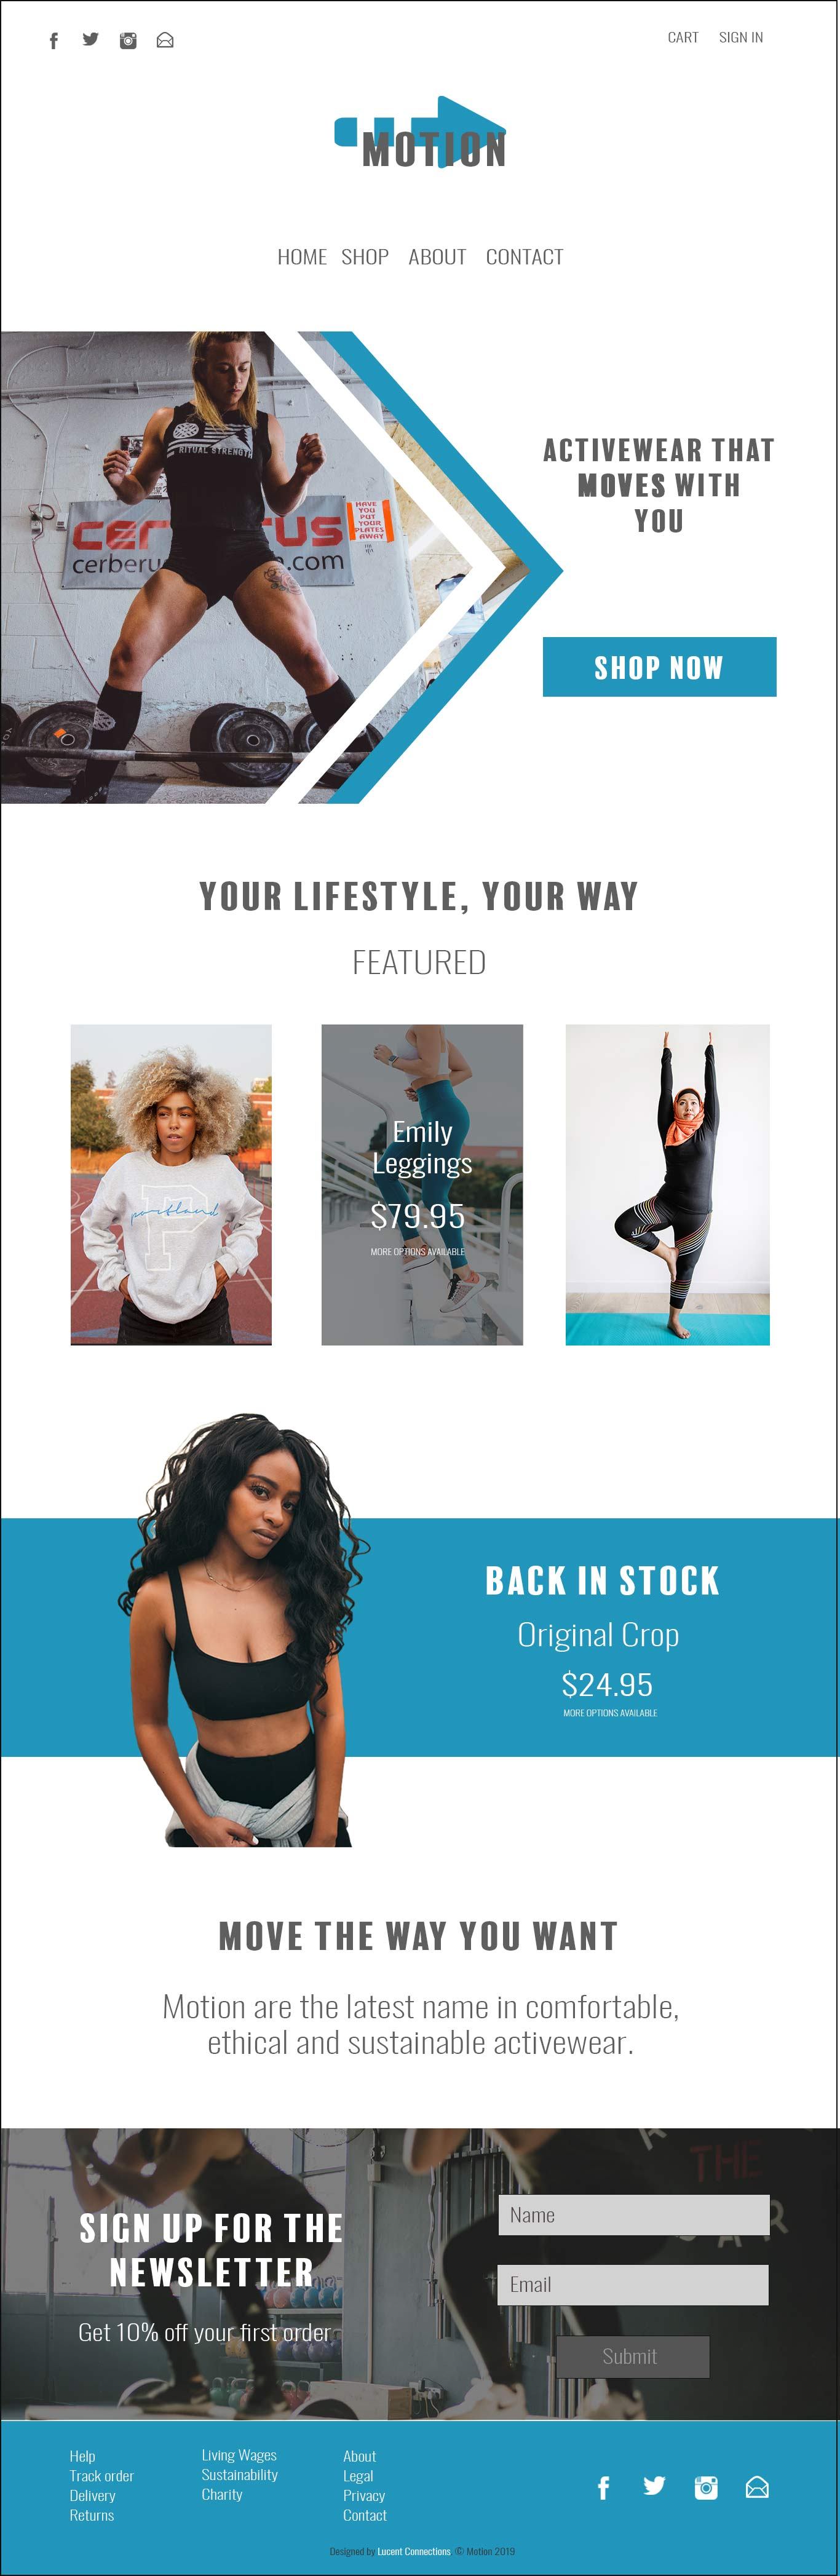 A modern website design for a sustainable activewear company